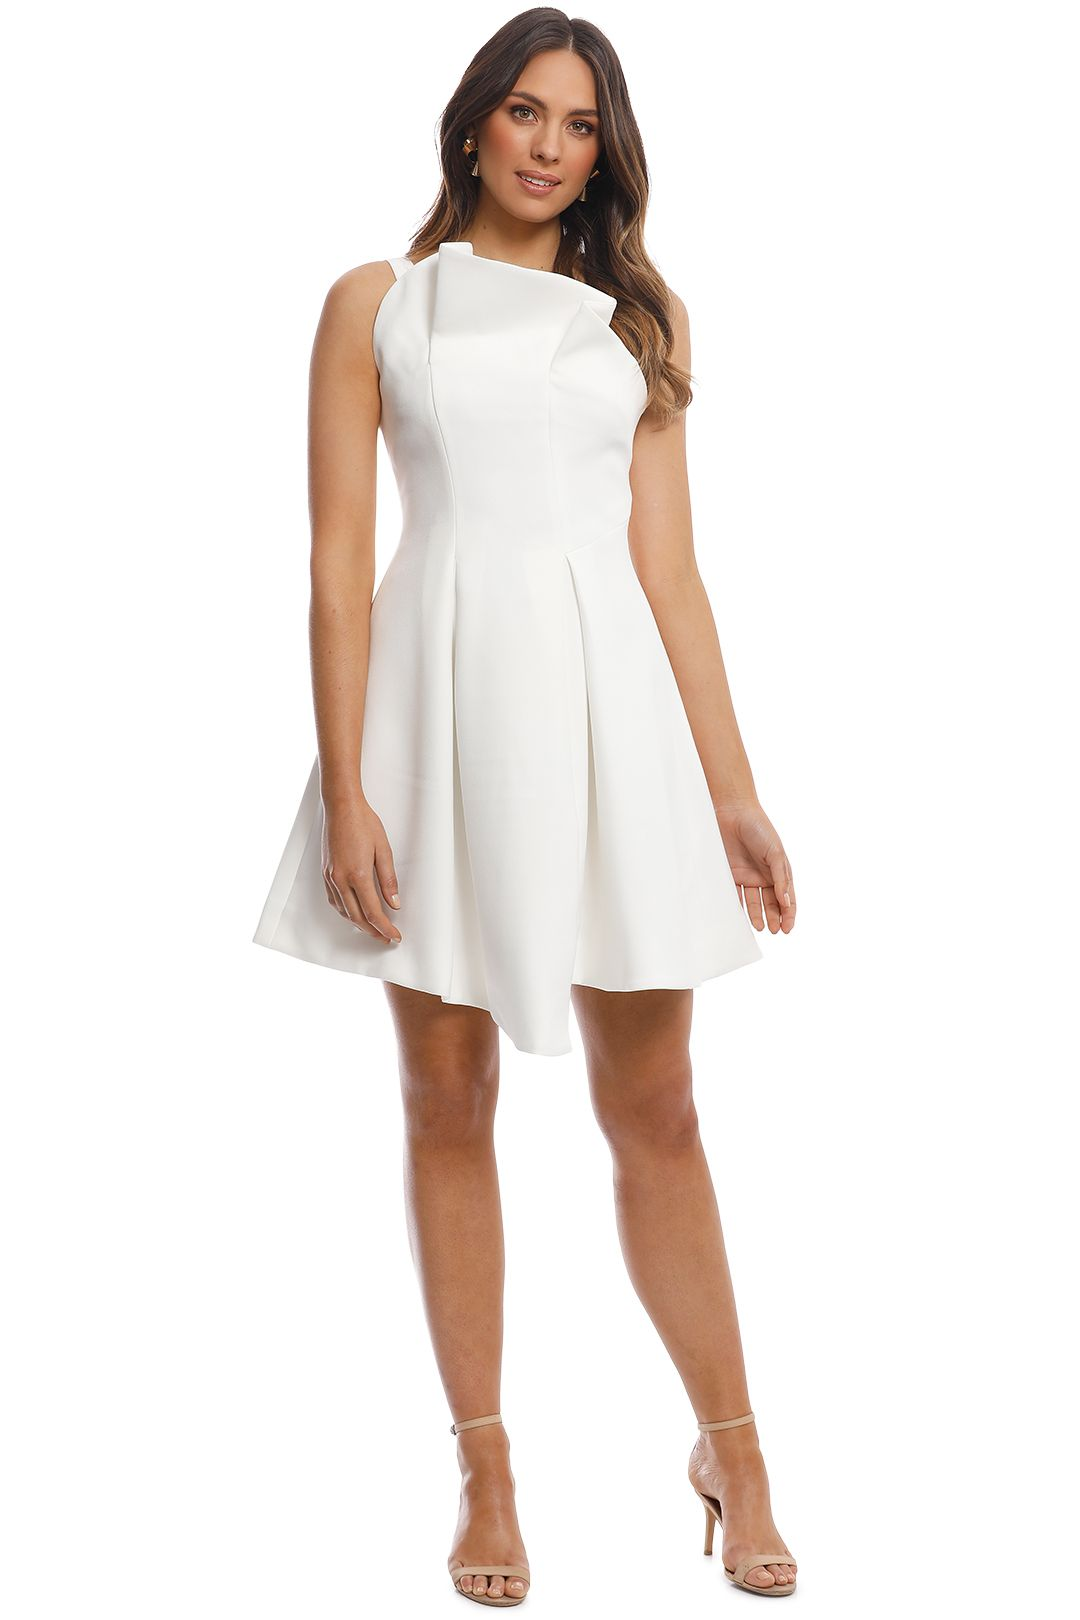 Elliatt - Frida Dress - White - Front